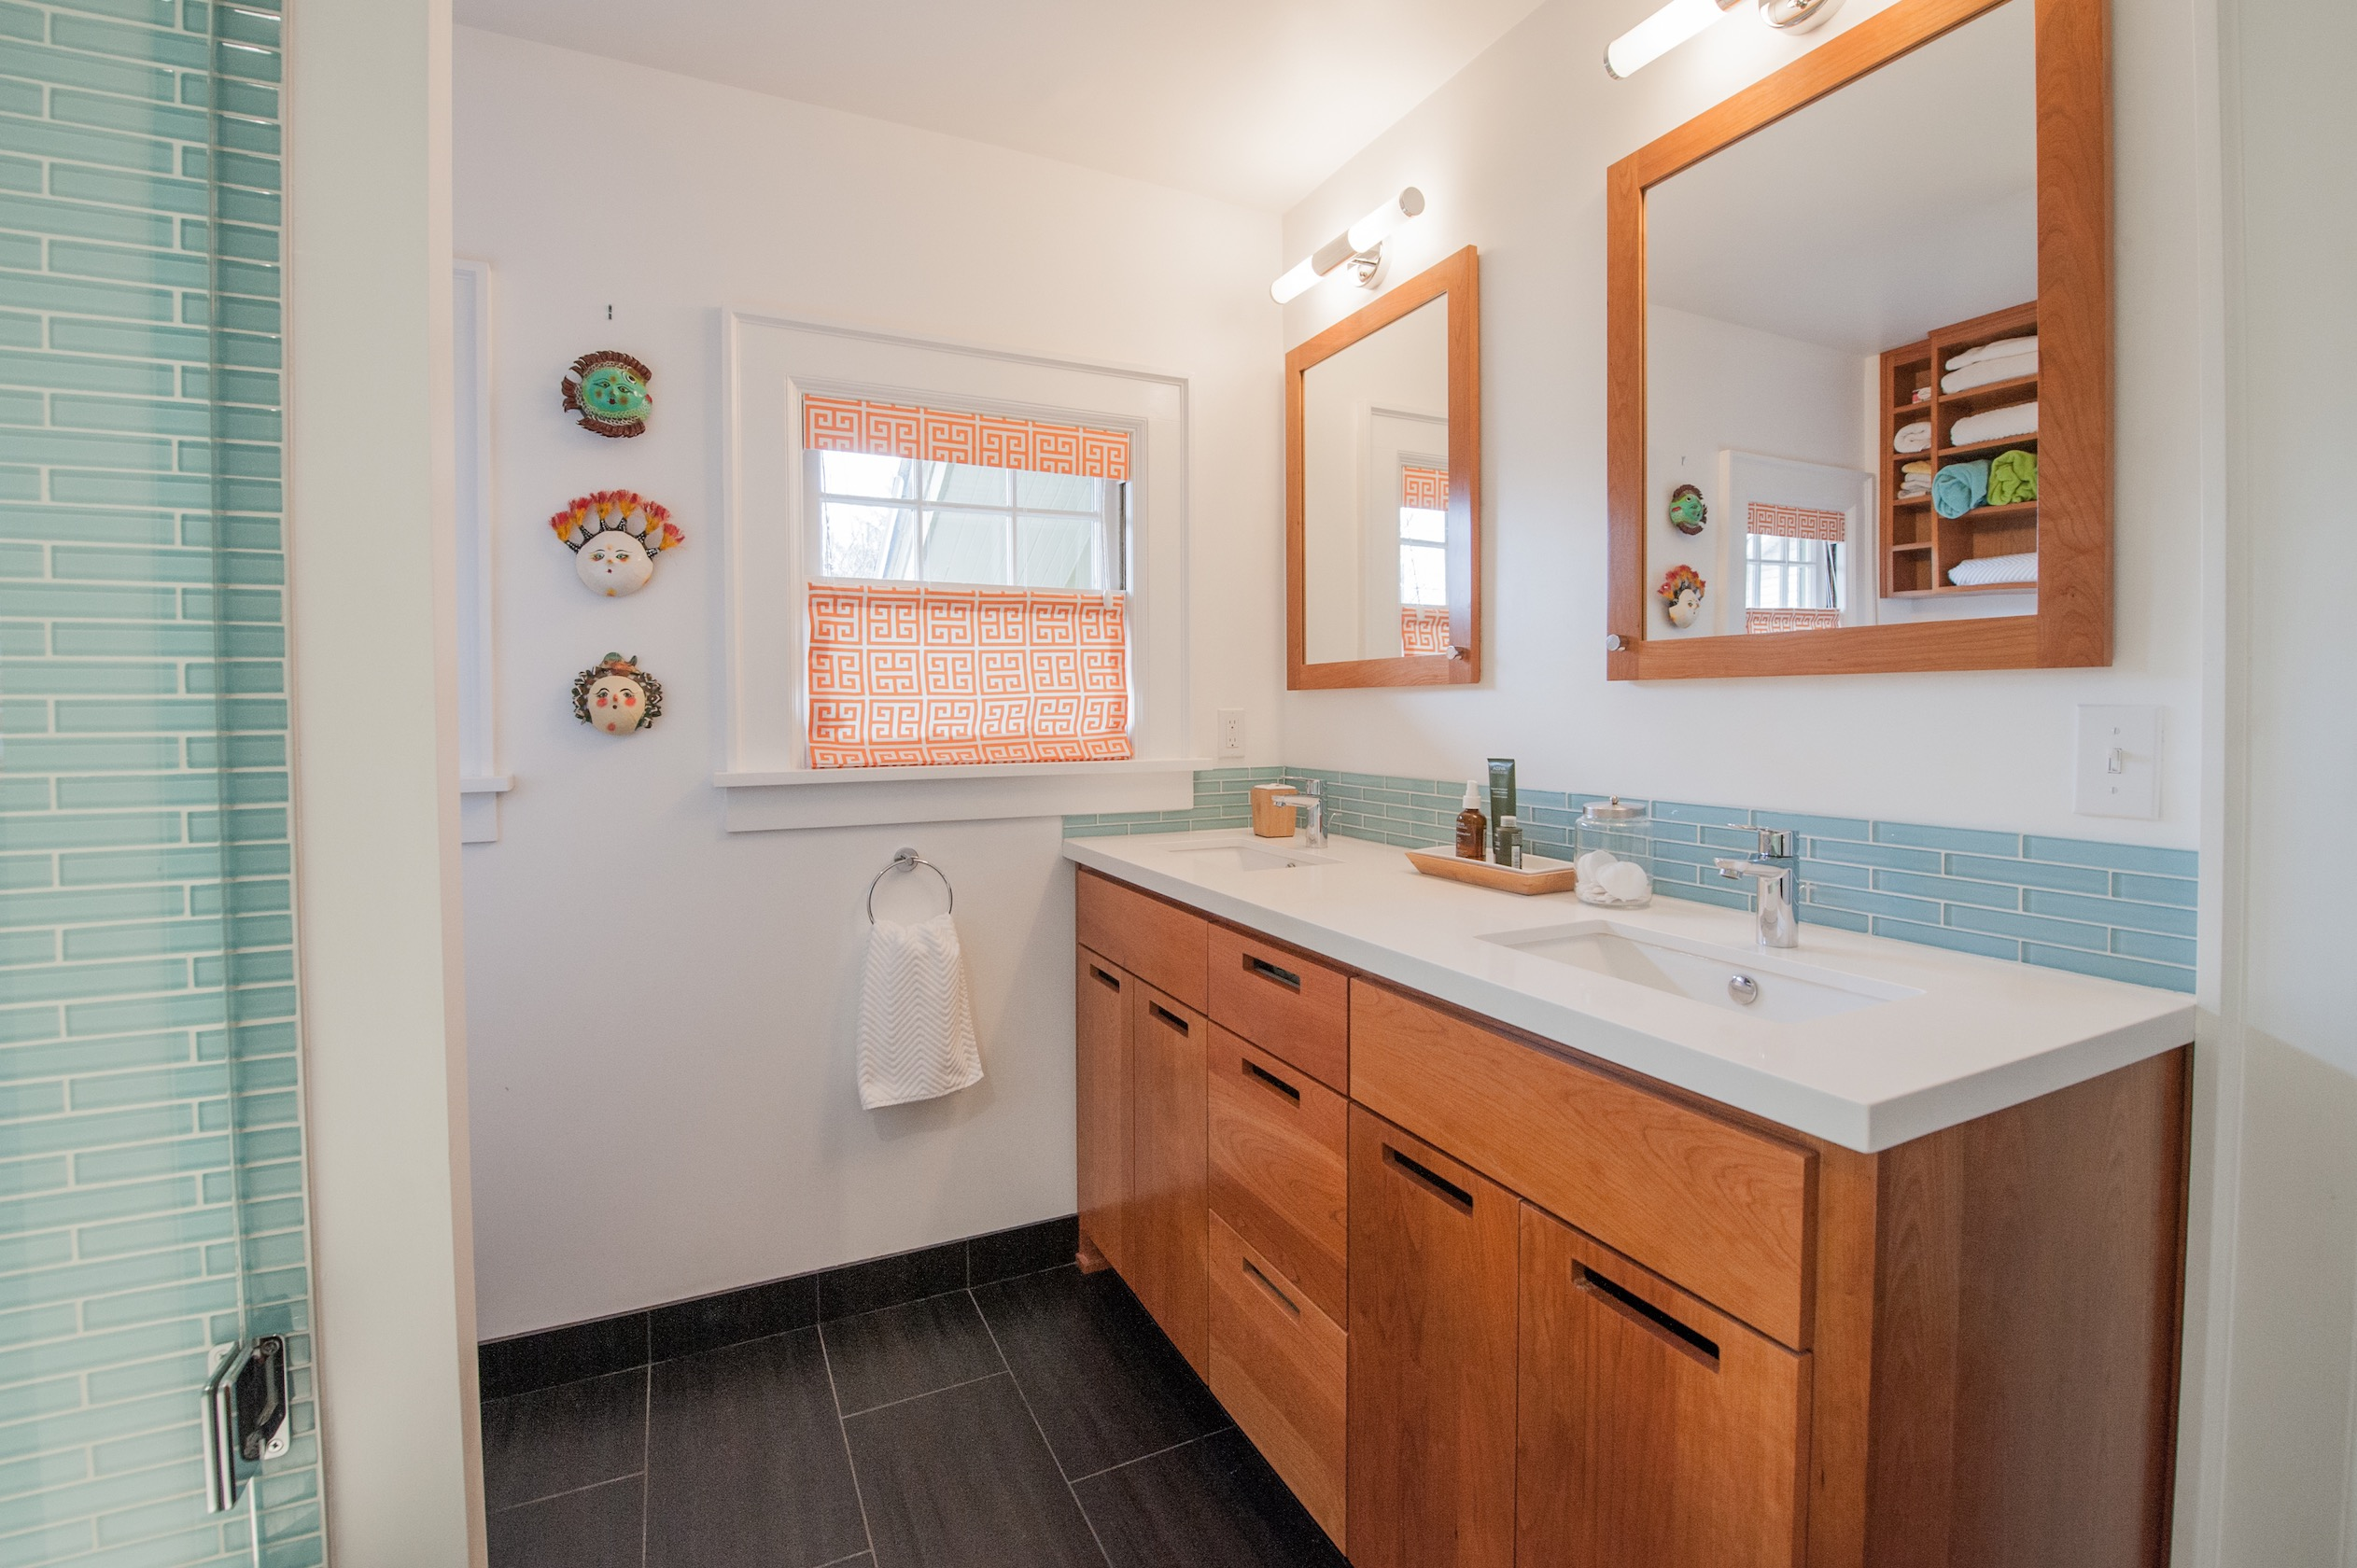 Blue And White Asian Bathroom Wooden Furniture With Wood Vanity (View 5 of 18)